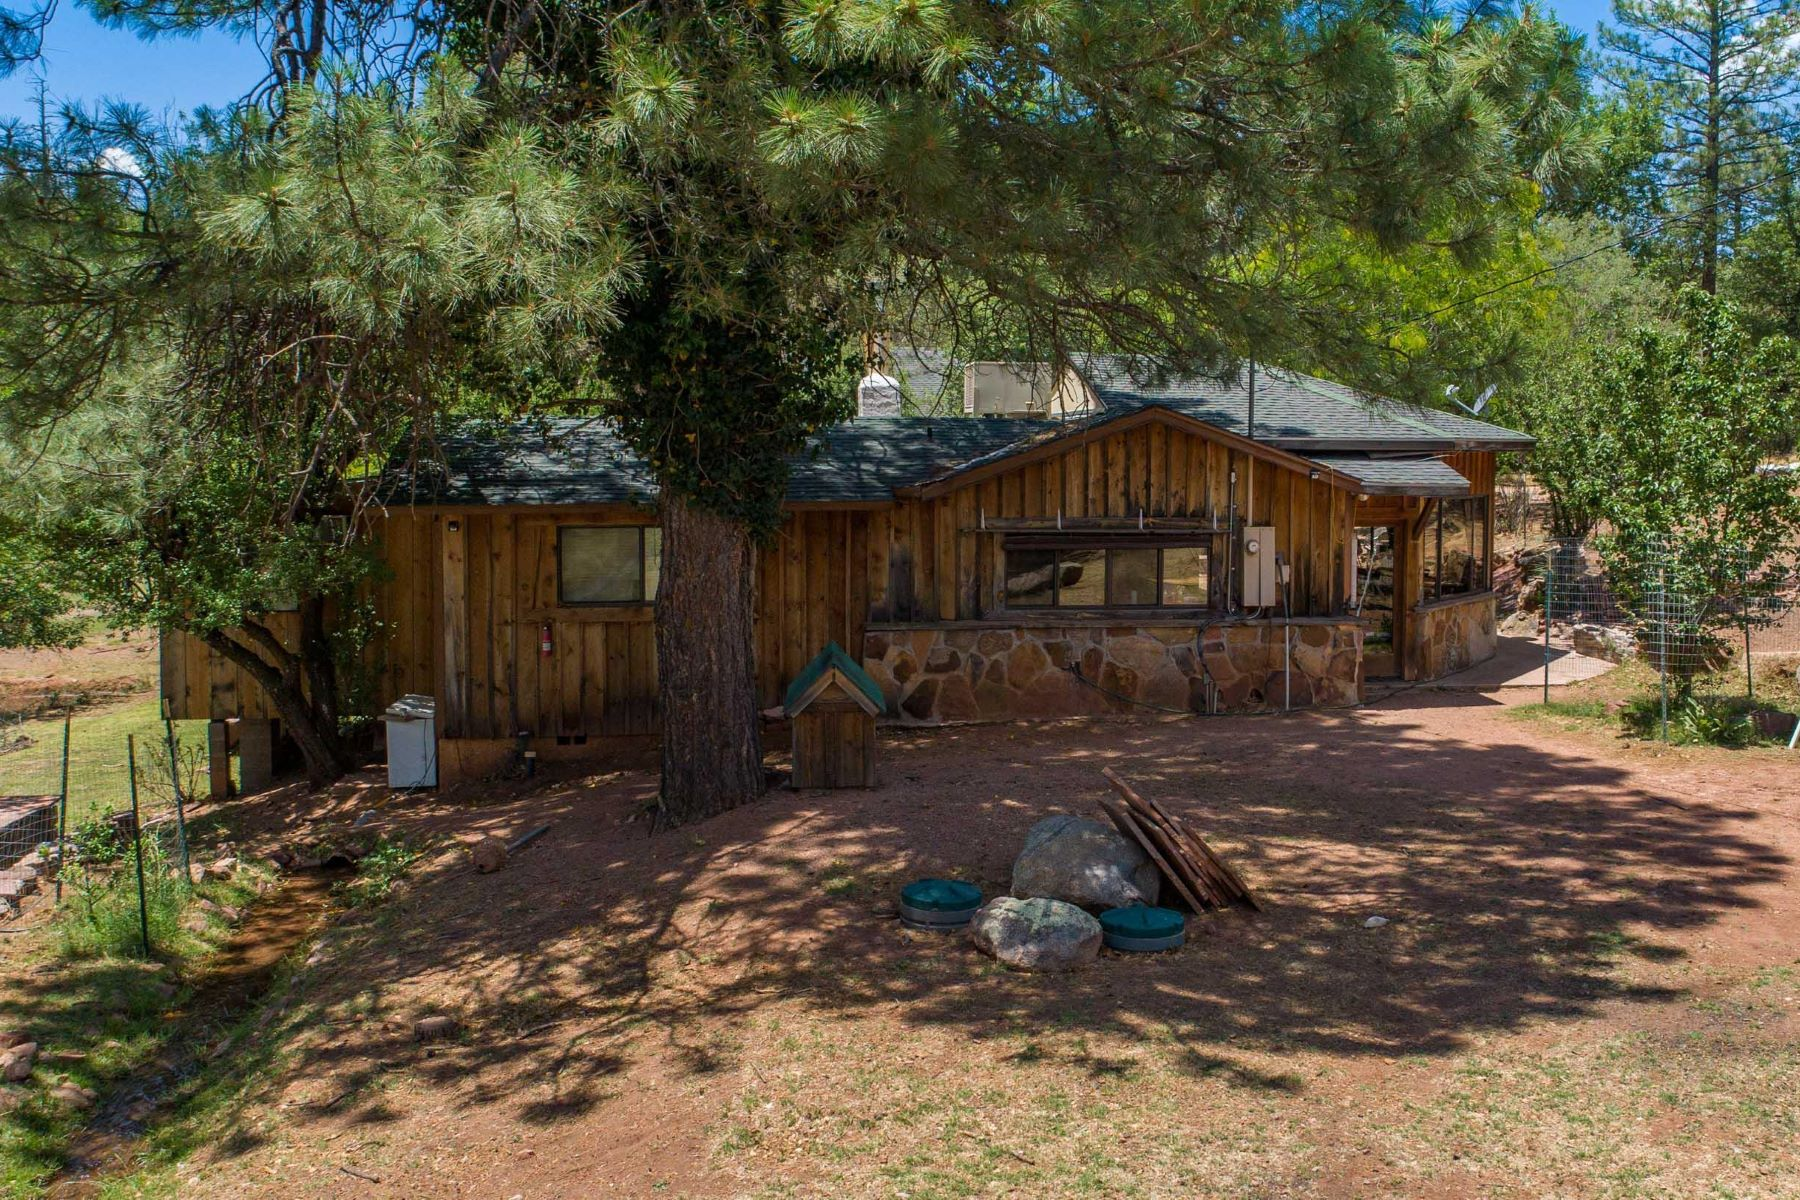 Land for Active at Historic Cold Springs Ranch 1965 S Fsr Lot 420 Payson, Arizona 85541 United States